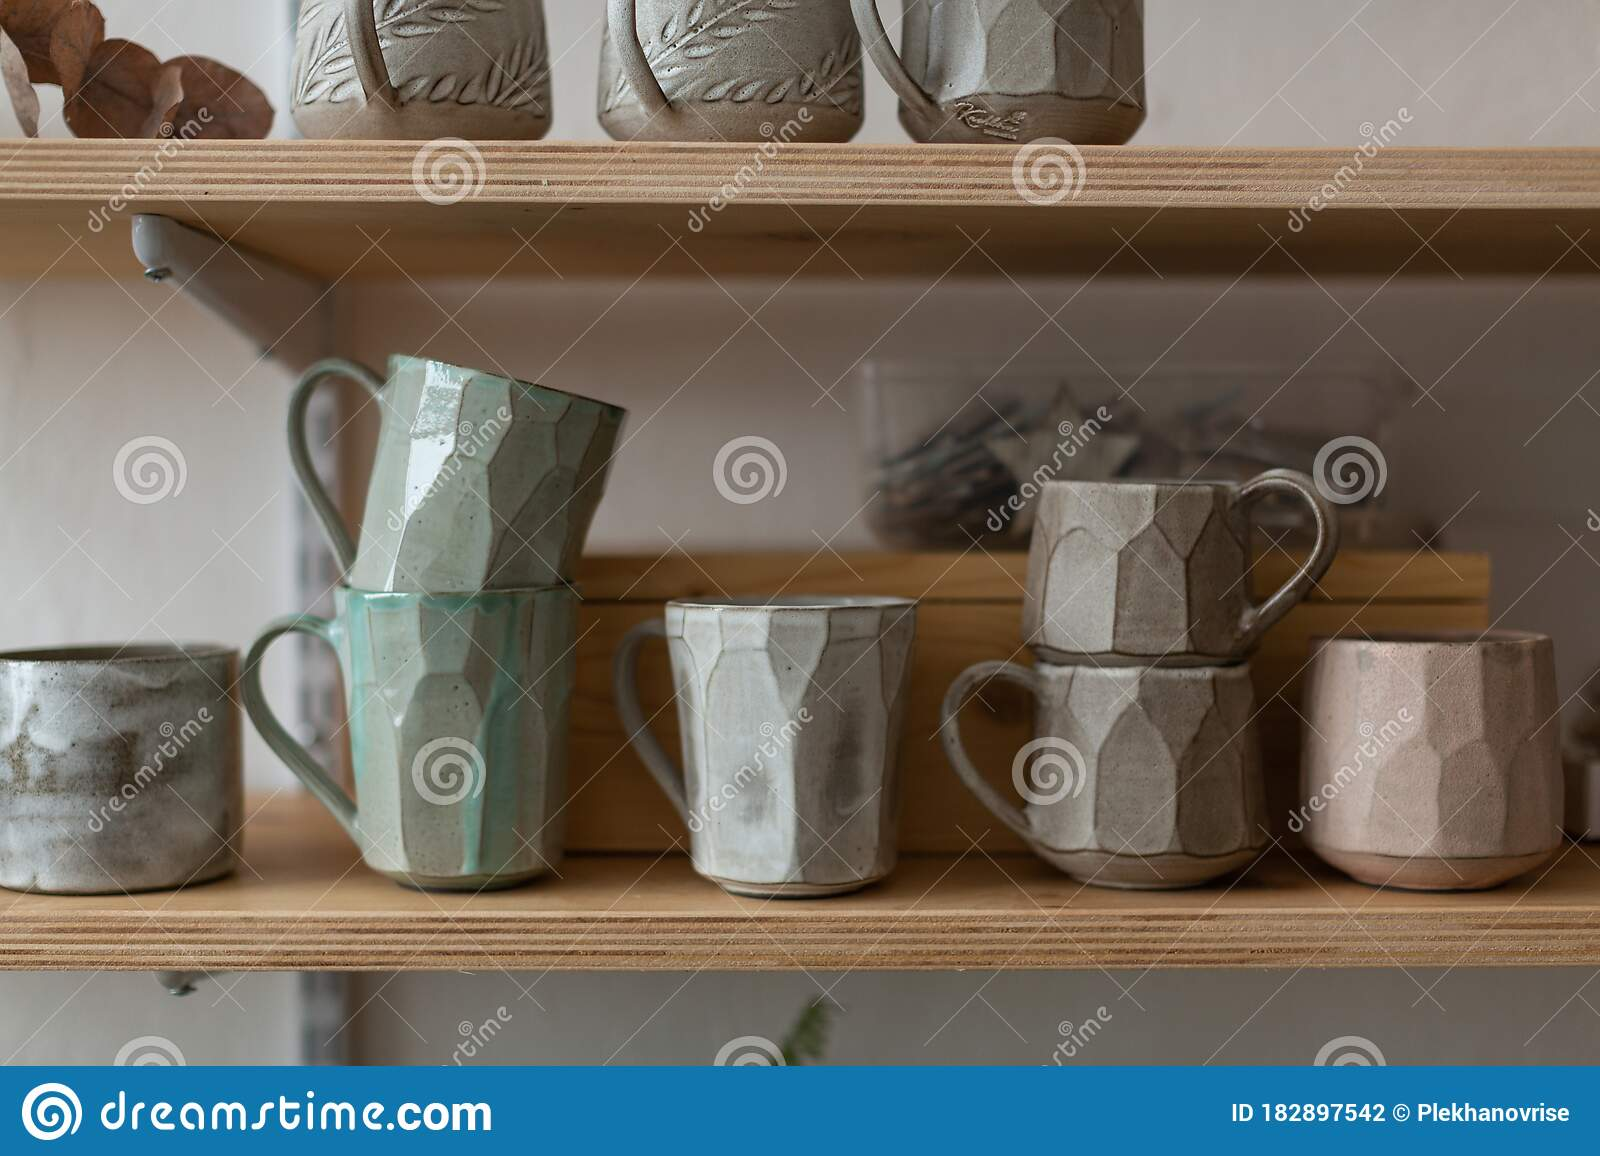 Unusual Handmade Ceramic Mugs On A Shelf In A Pottery Workshop Stock Photo Image Of Individual Gray 182897542